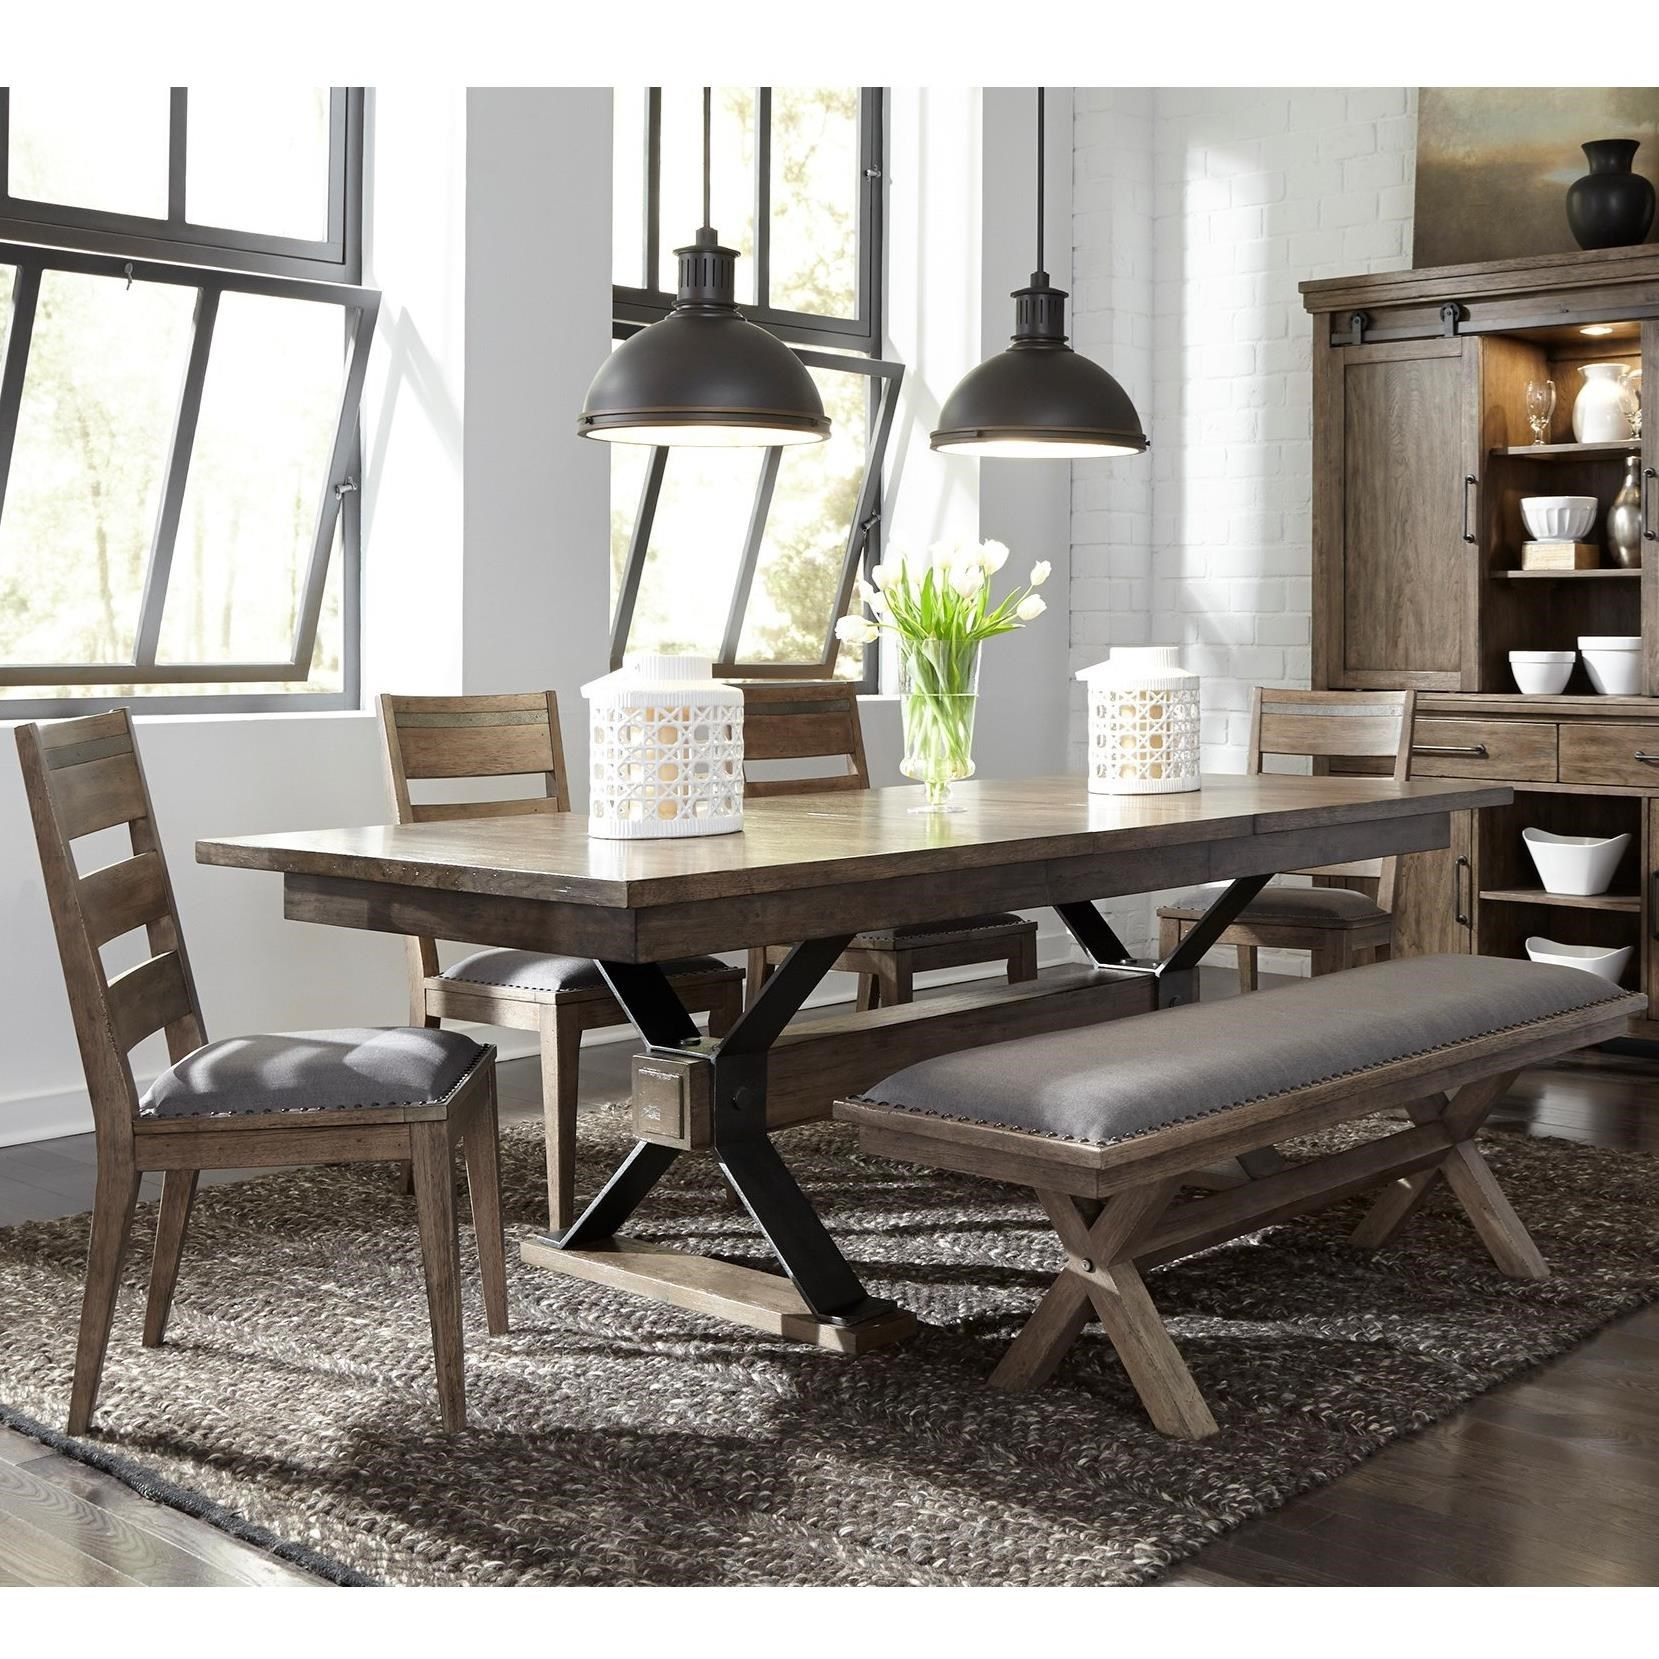 Genial Liberty Furniture Sonoma Road6 Piece Table And Chair Set